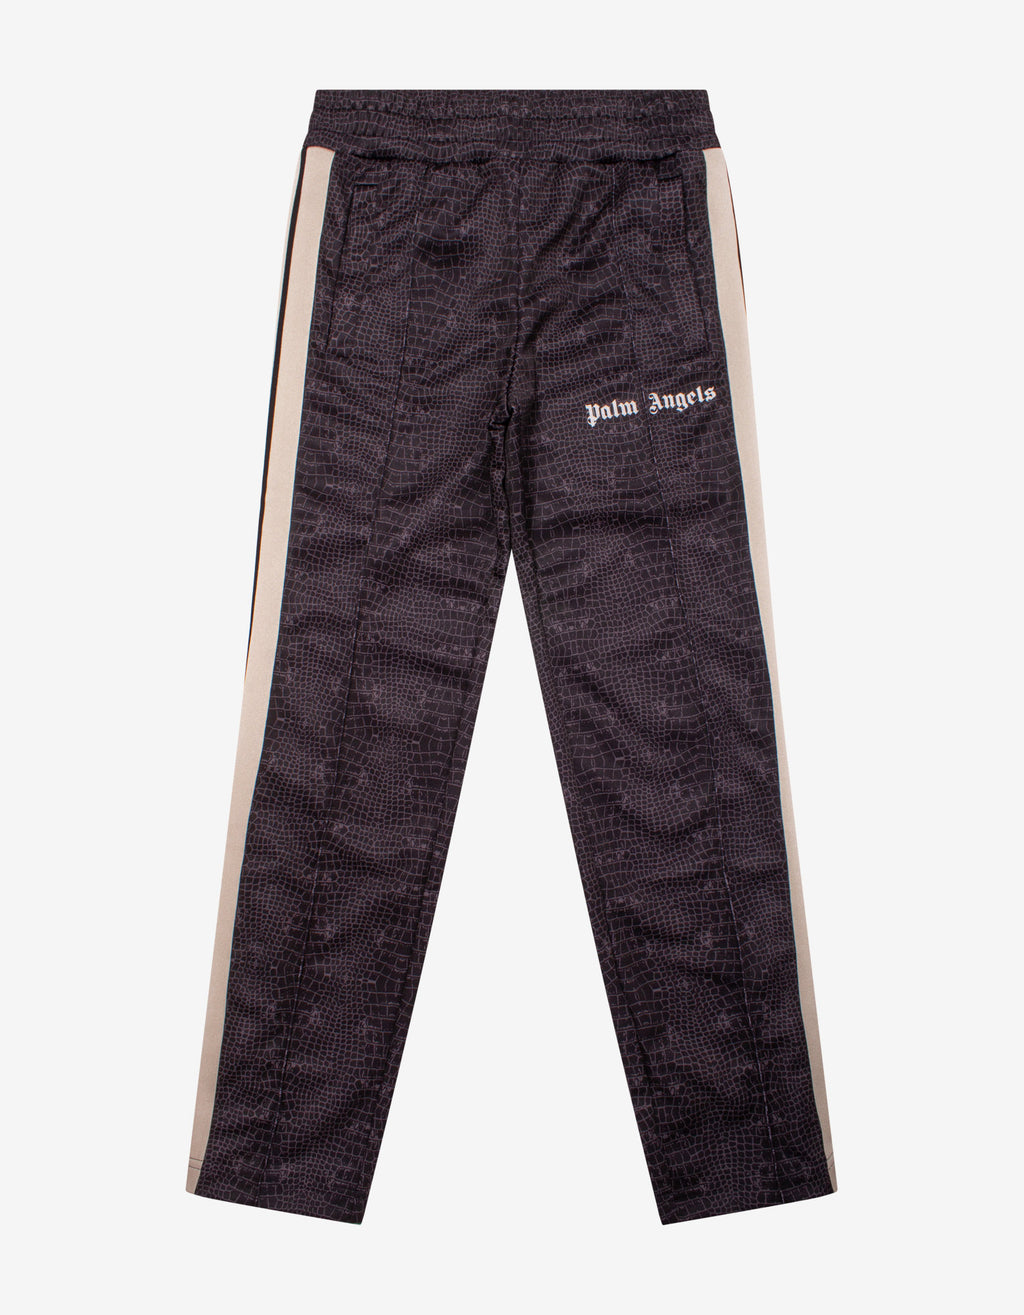 Crocodile Print Track Pants